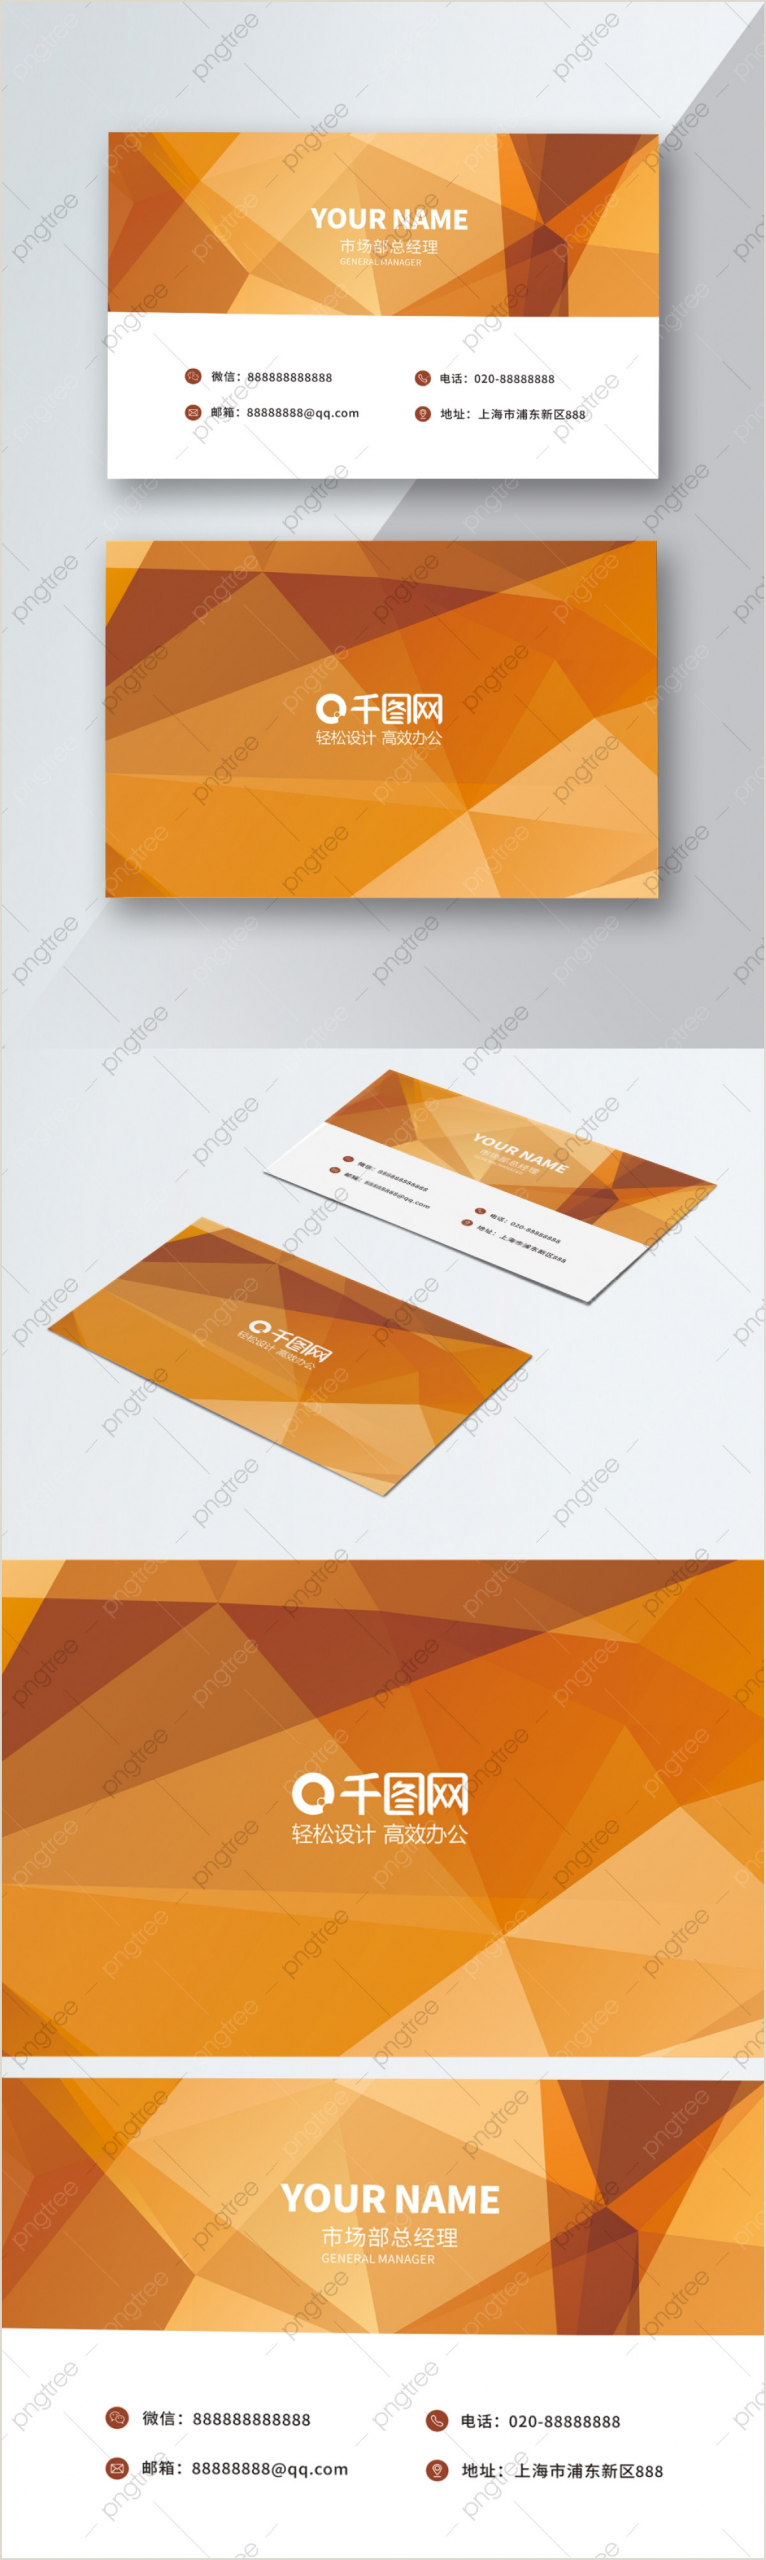 Business Cards With Personal Photo Personalized Business Cards Png